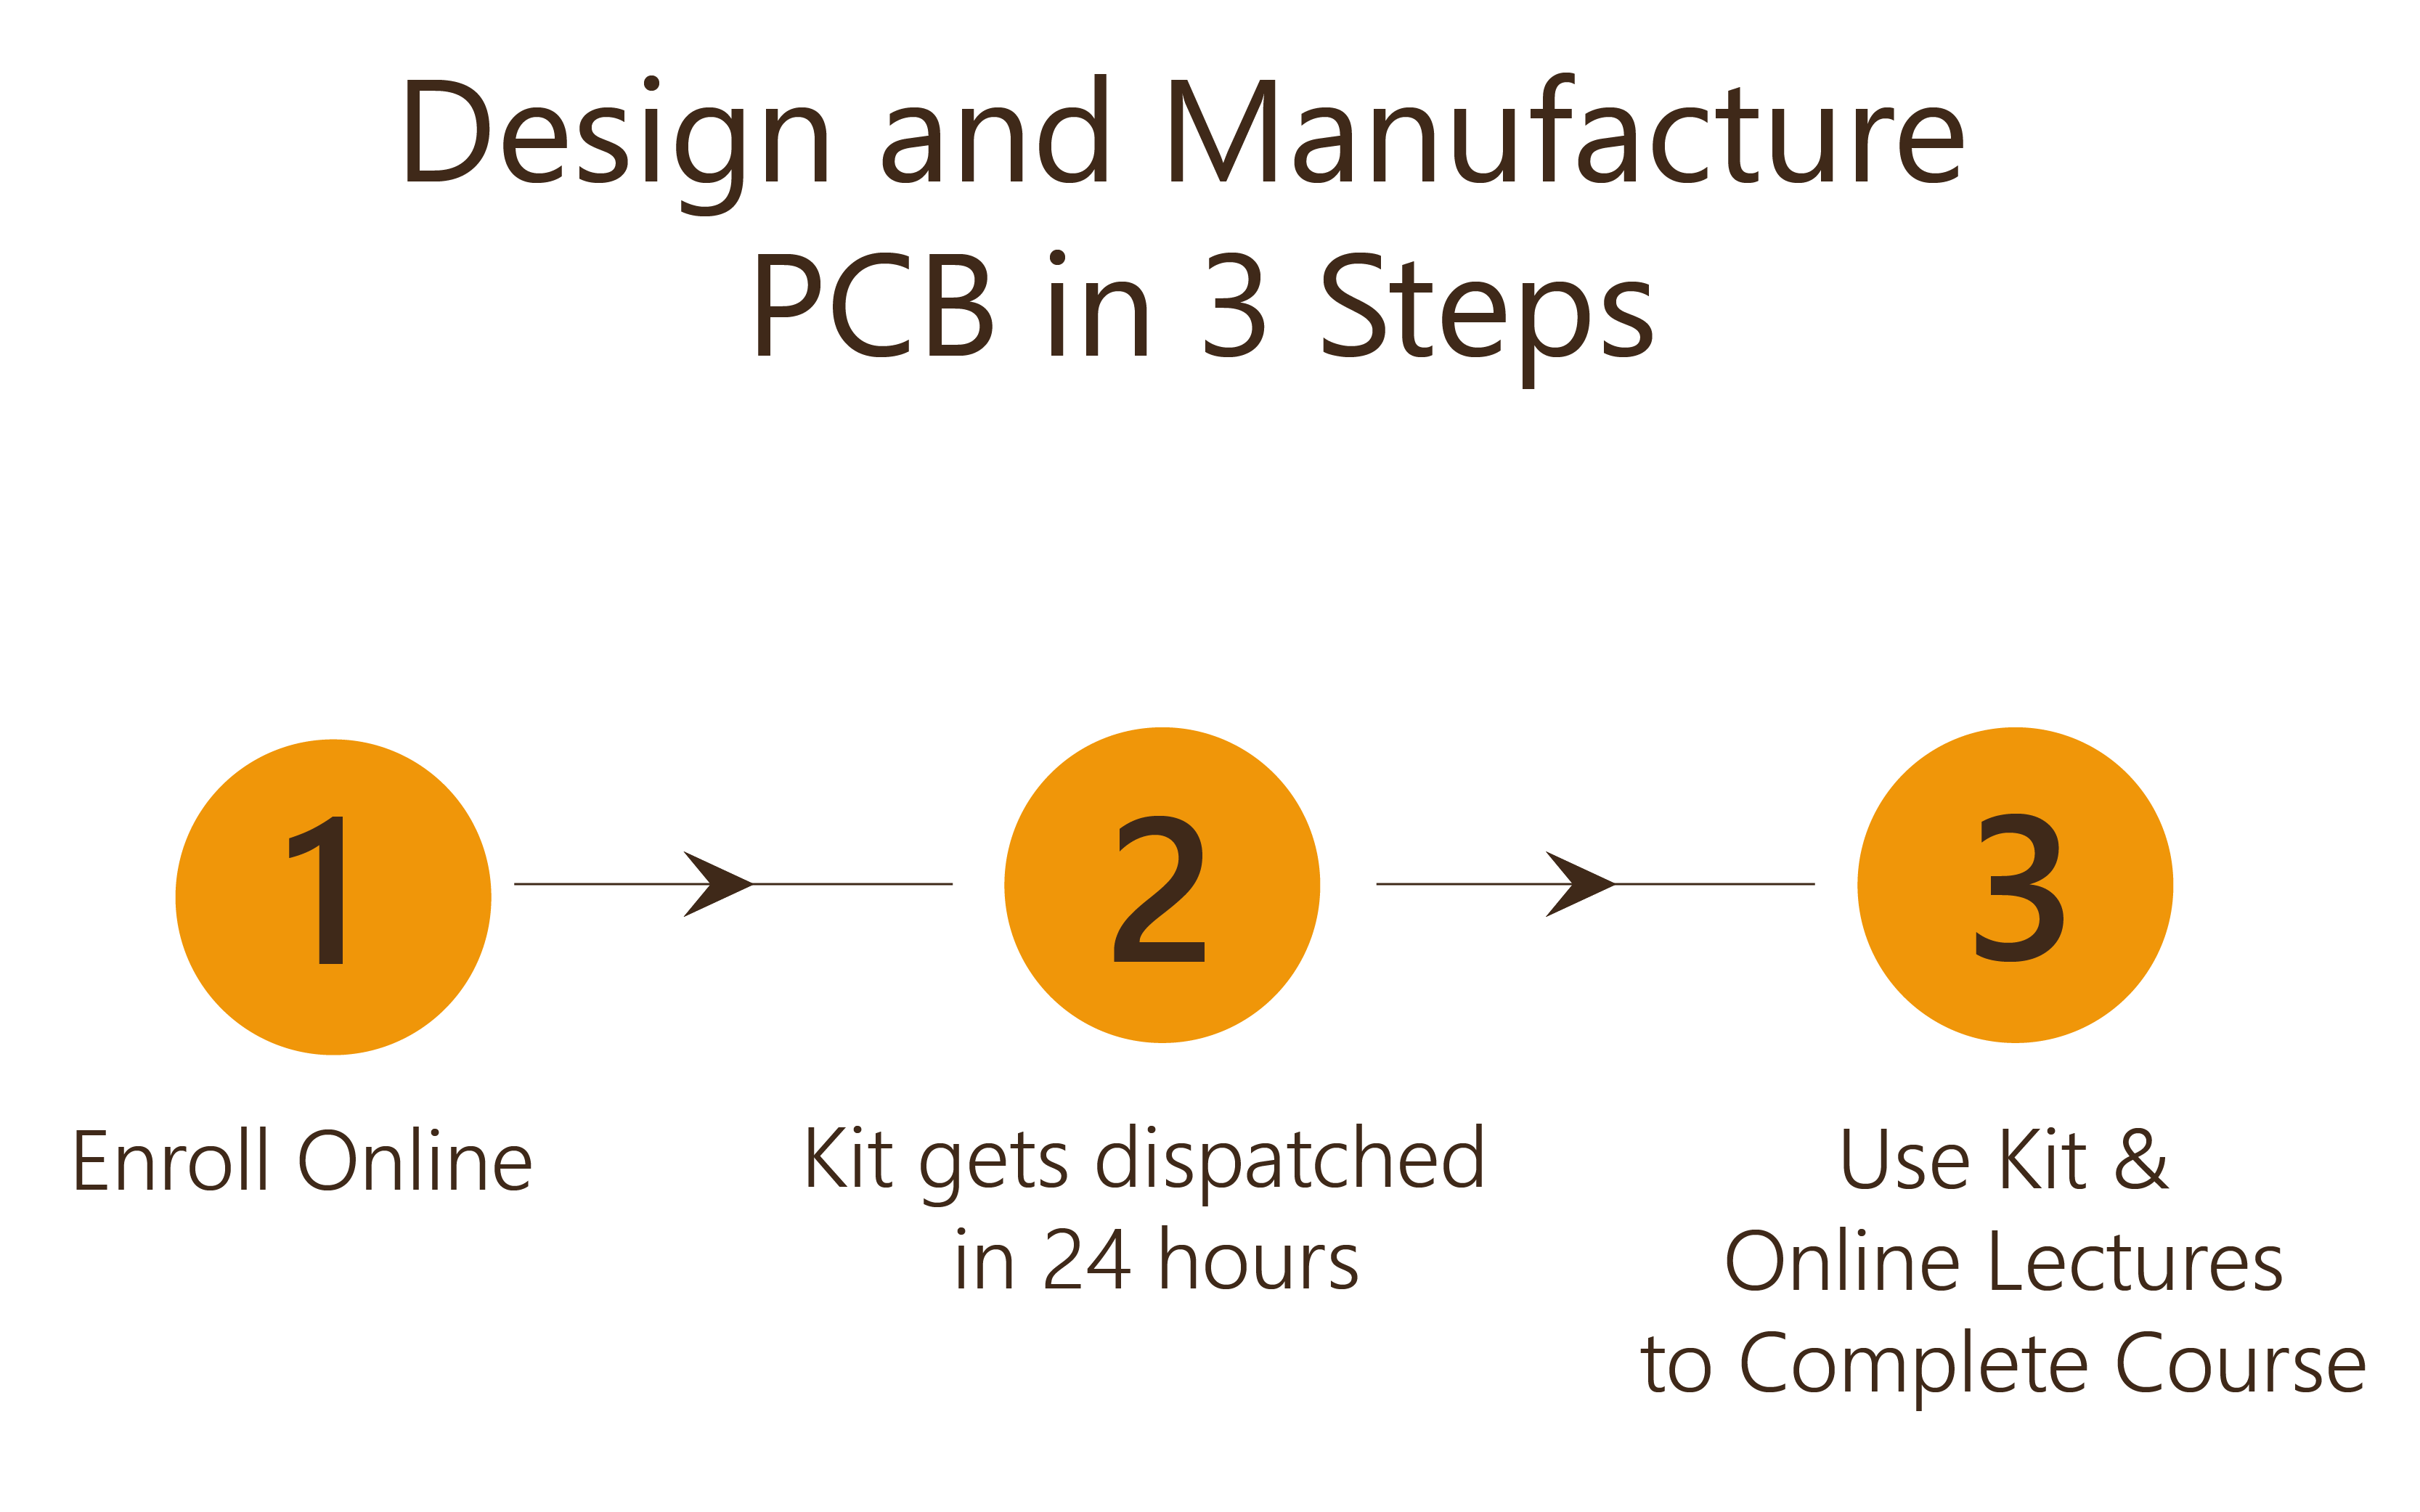 Learn and Manufacture PCB in 3 Steps